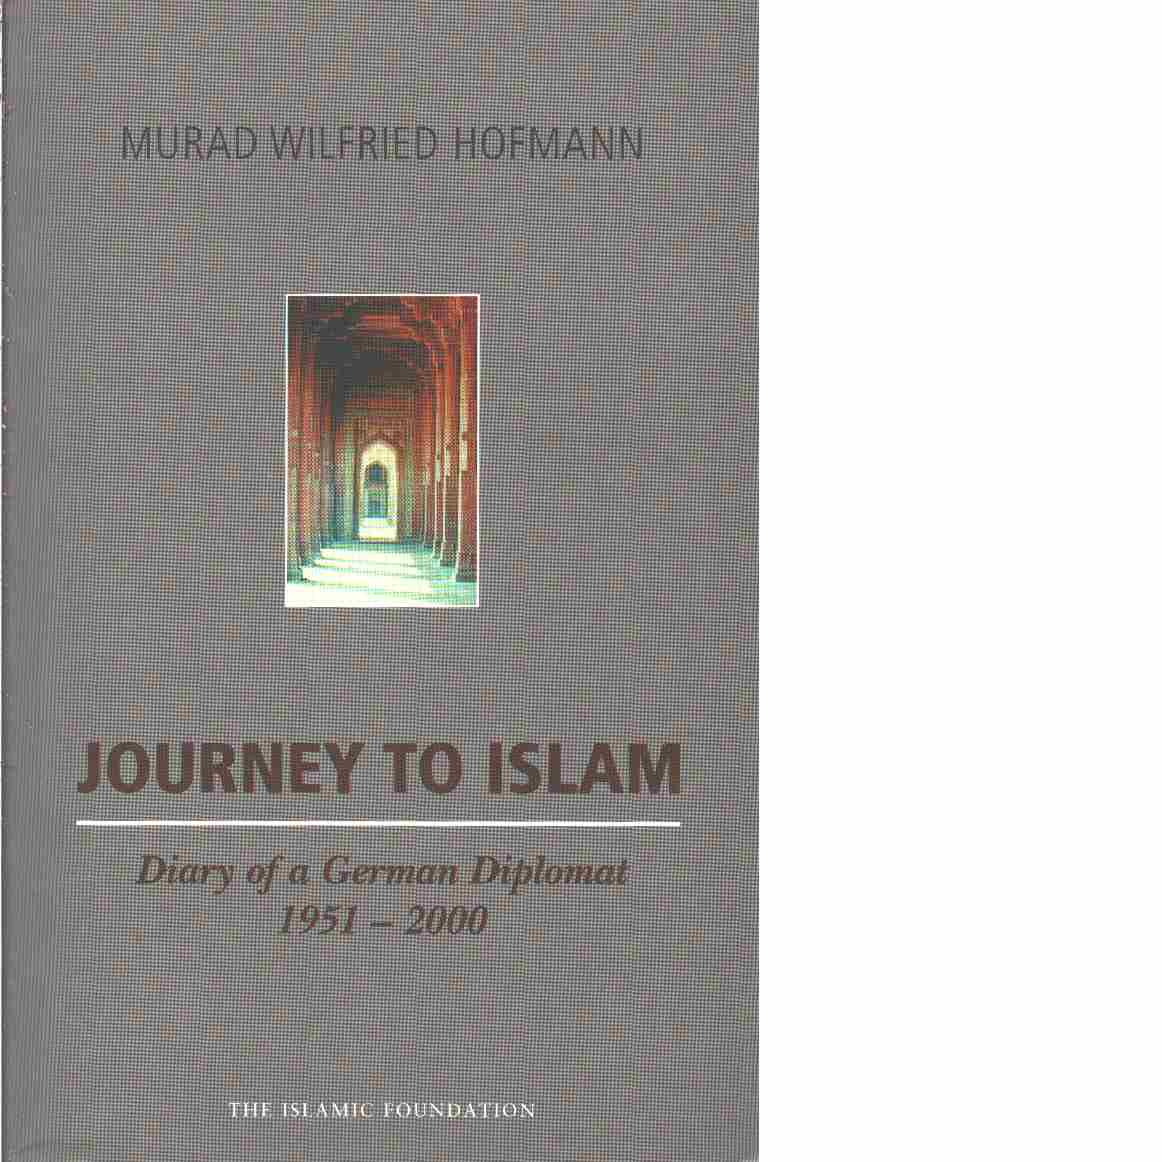 Journey to Islam: Diary of a German Diplomat 1951-2000 - Hoffman, Murad Wilfred